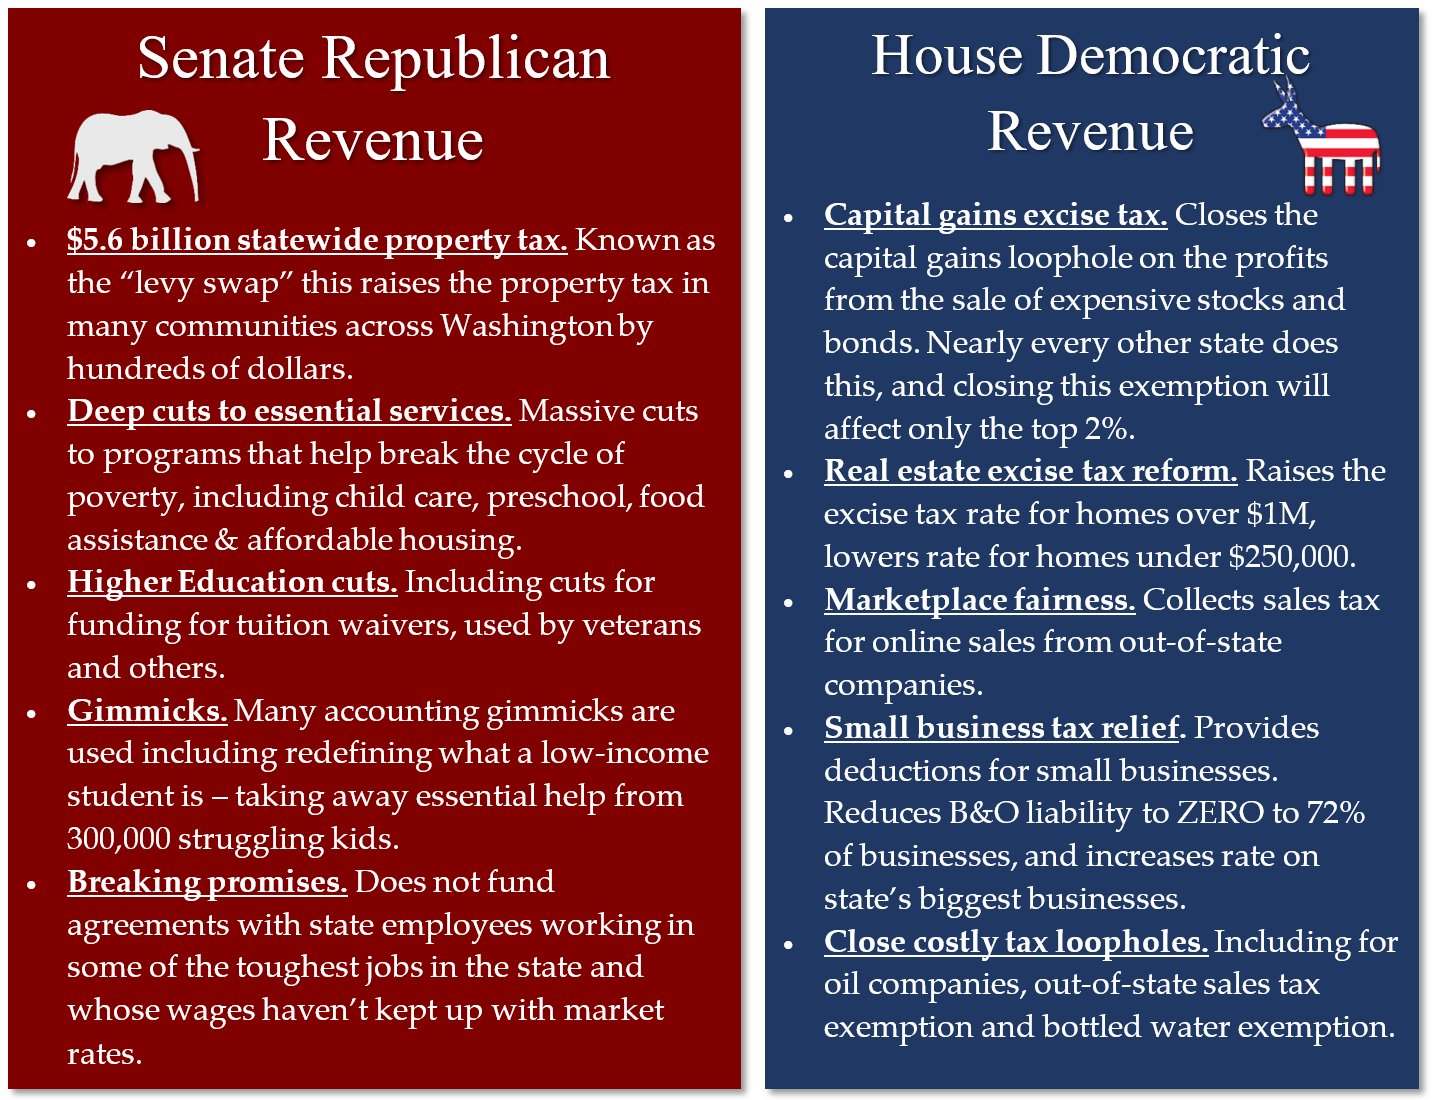 House v Senate revenue